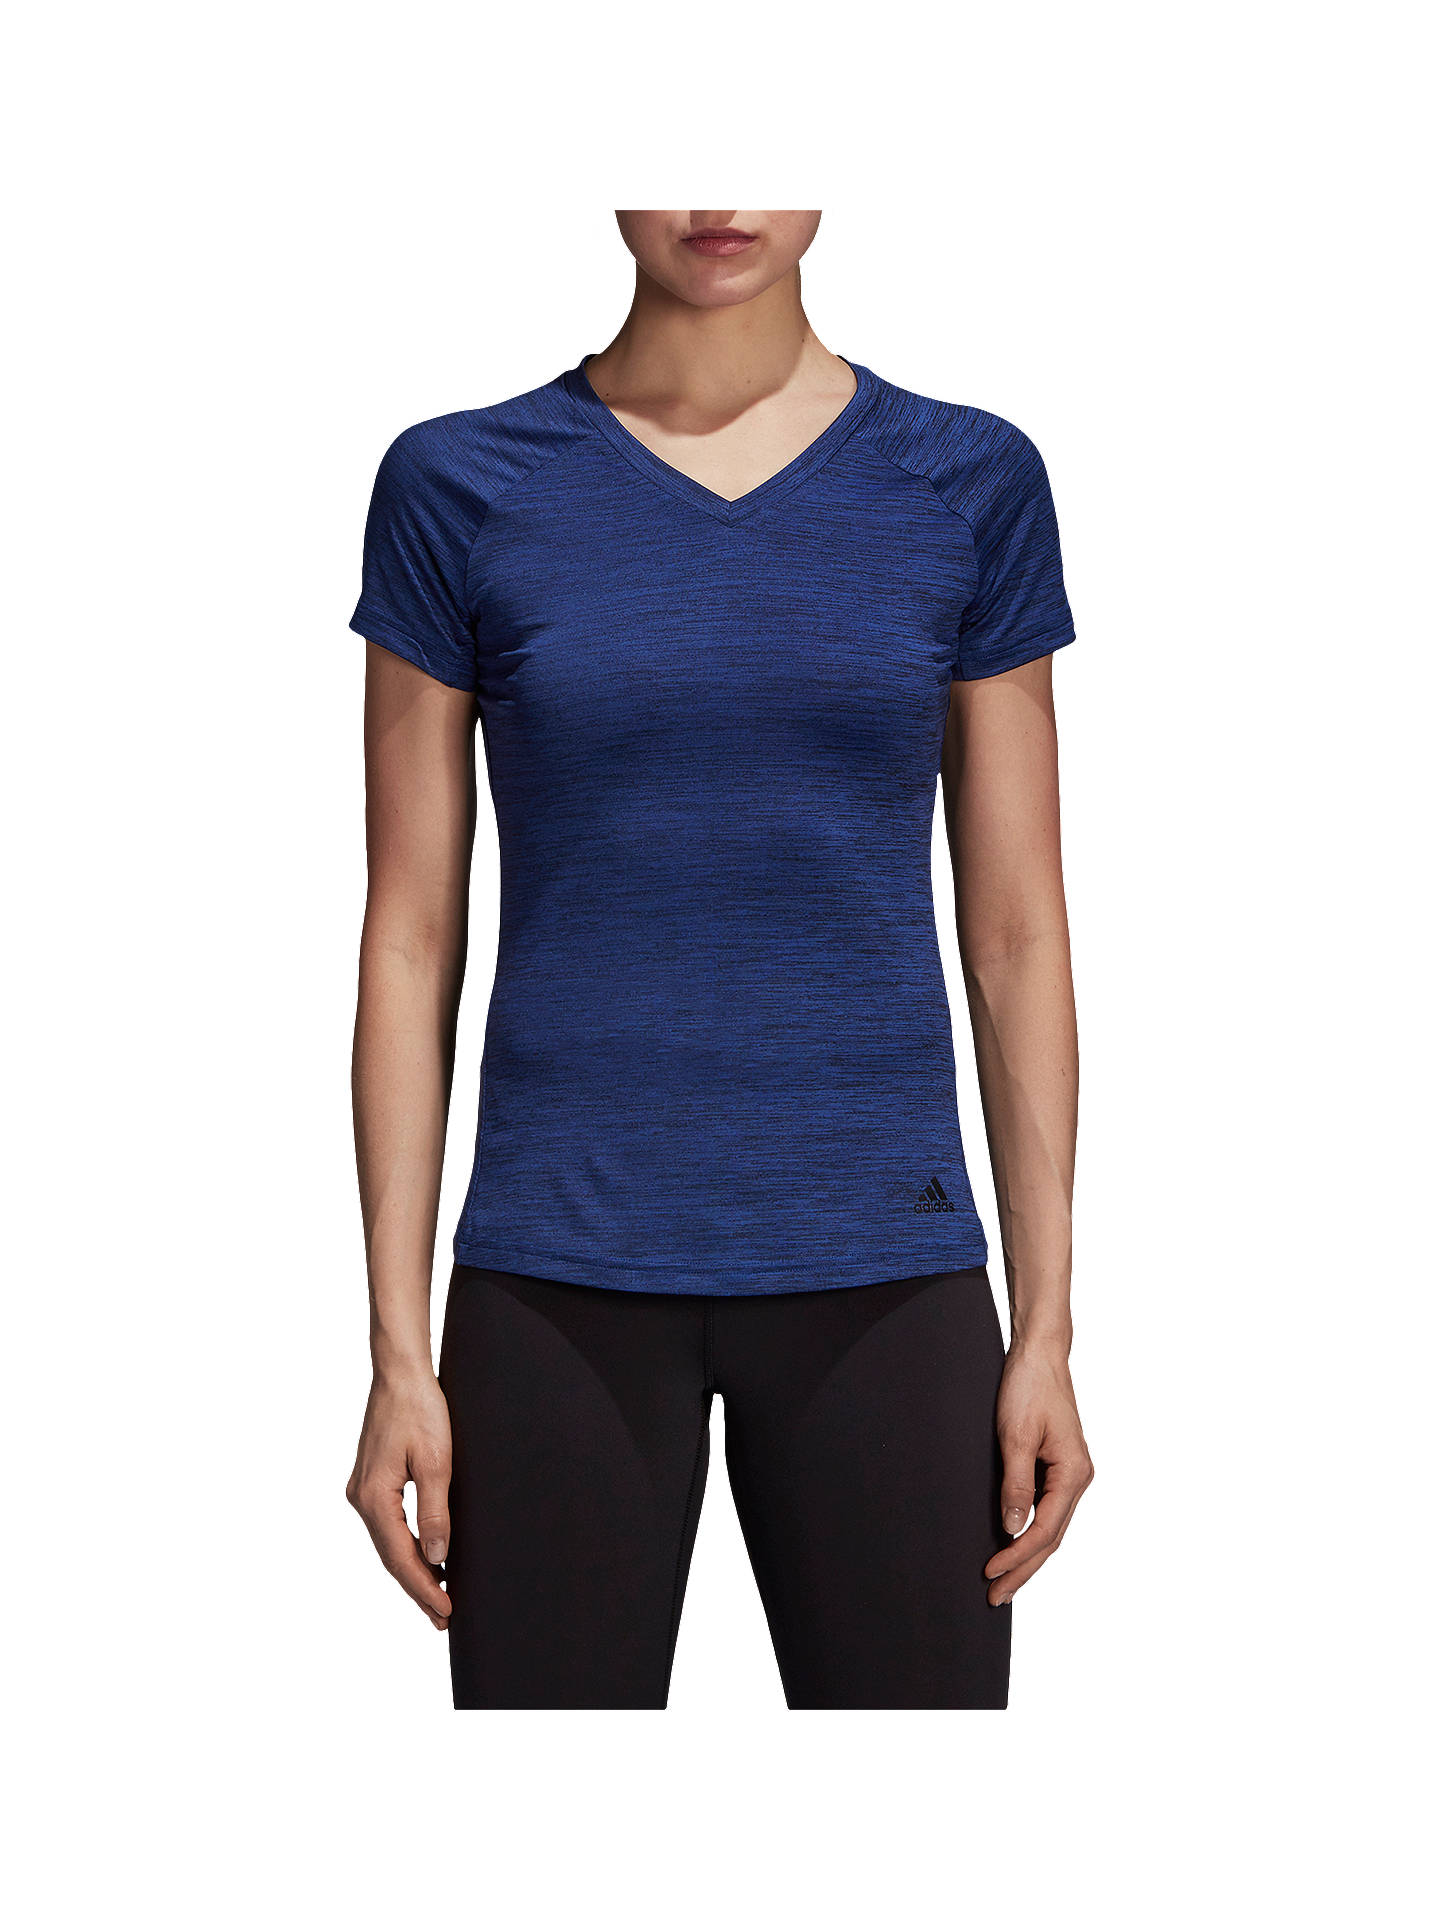 Buyadidas Freelift T-Shirt, Coloured Heather/Mystery Ink, XS Online at johnlewis.com